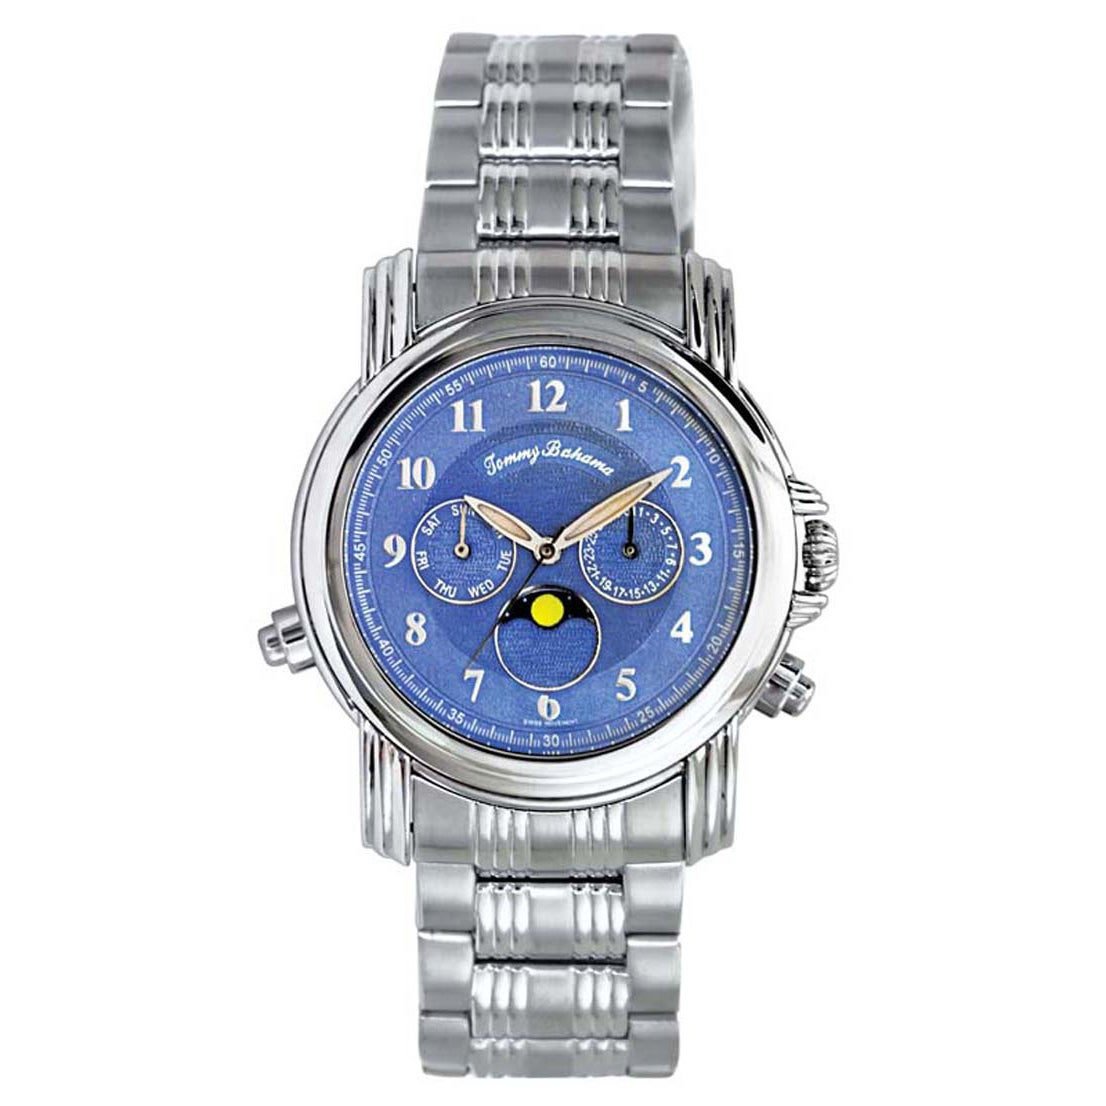 b7c45985d11 Shop Tommy Bahama Men's 'Chasing the Moon' Watch - Free Shipping Today -  Overstock - 7879479